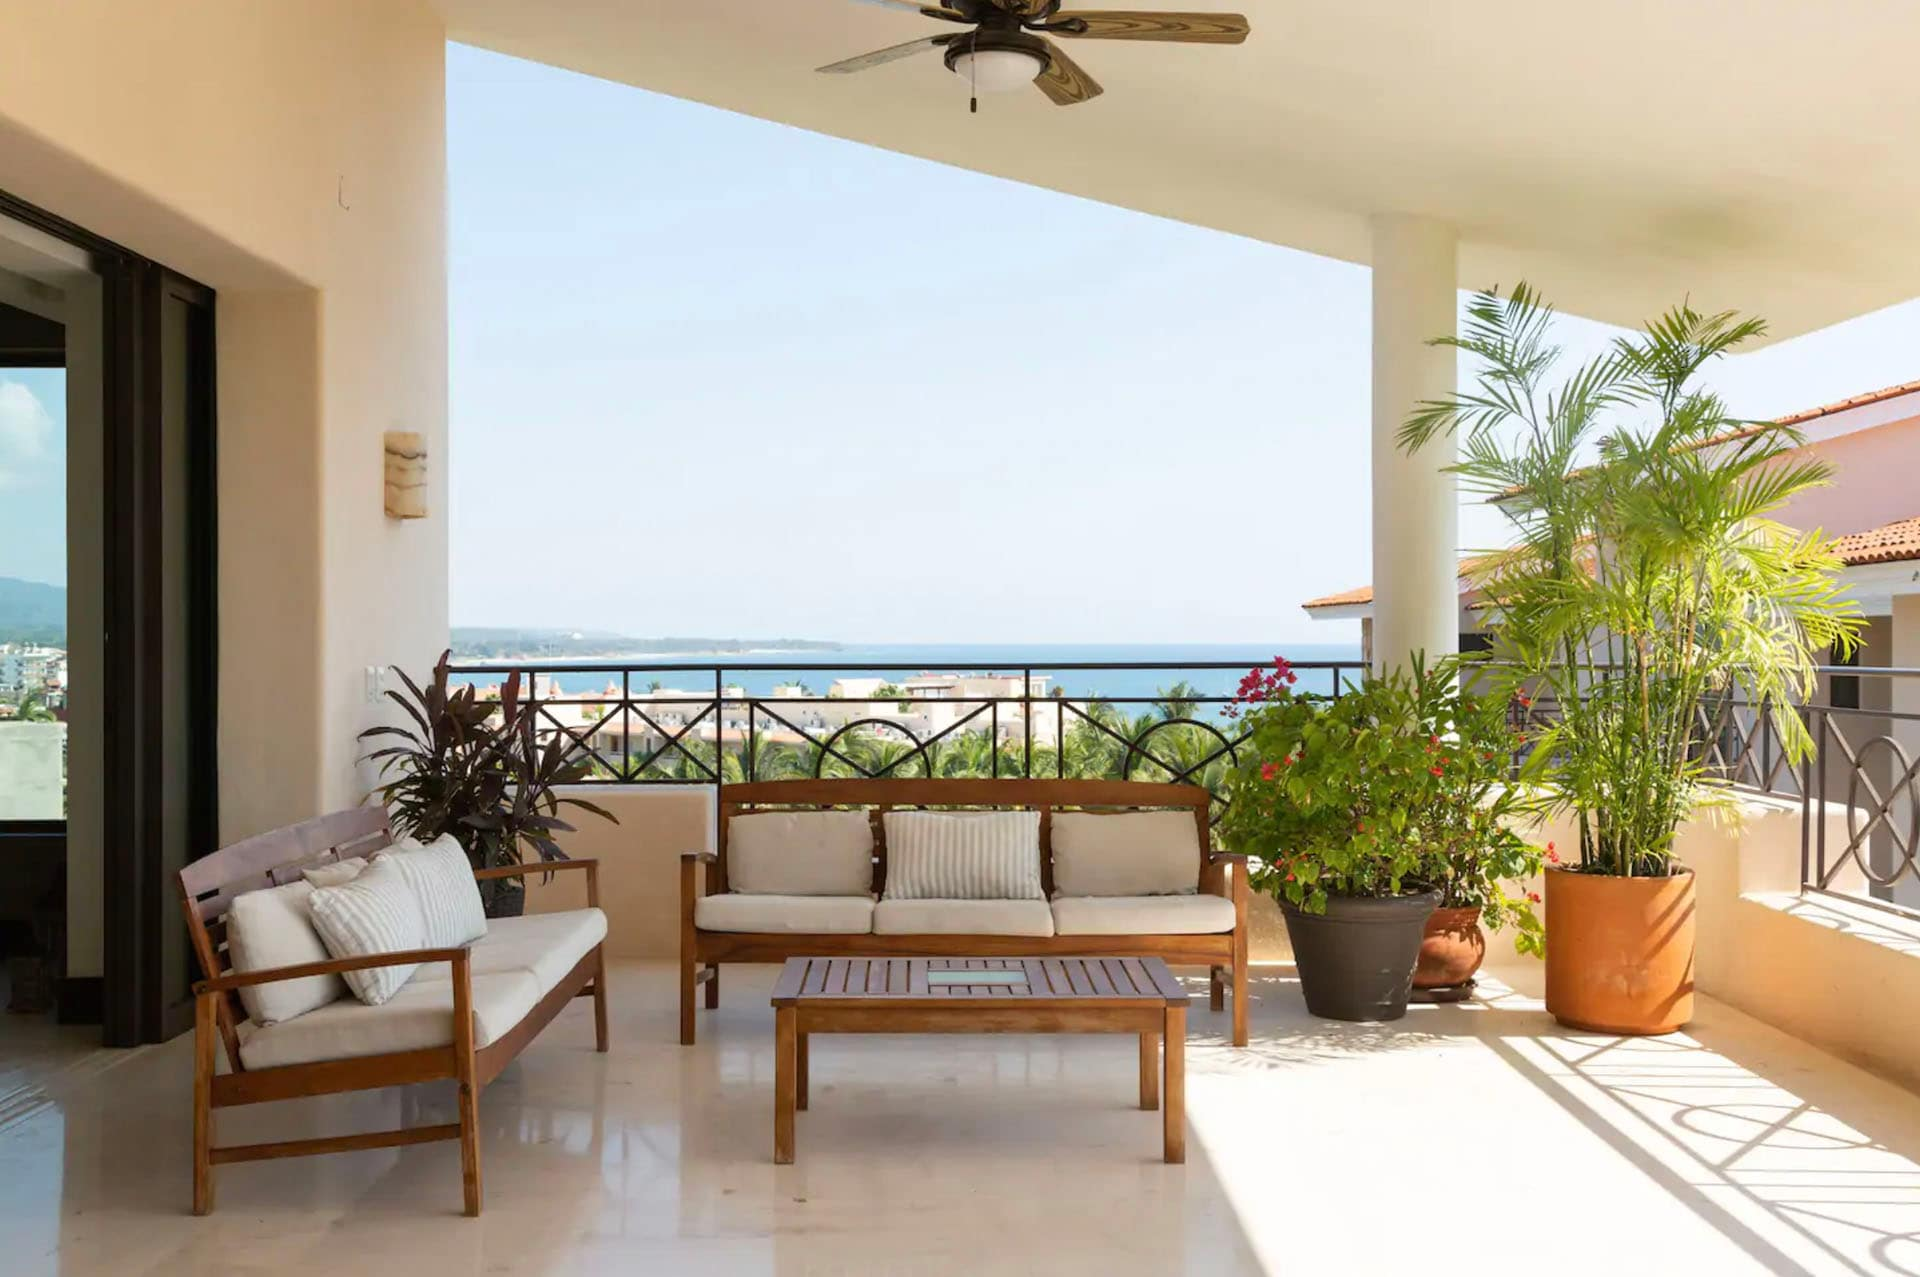 Property Image 1 - Ultra-Modern Sea-View Condo in Punta Mita Gated Community